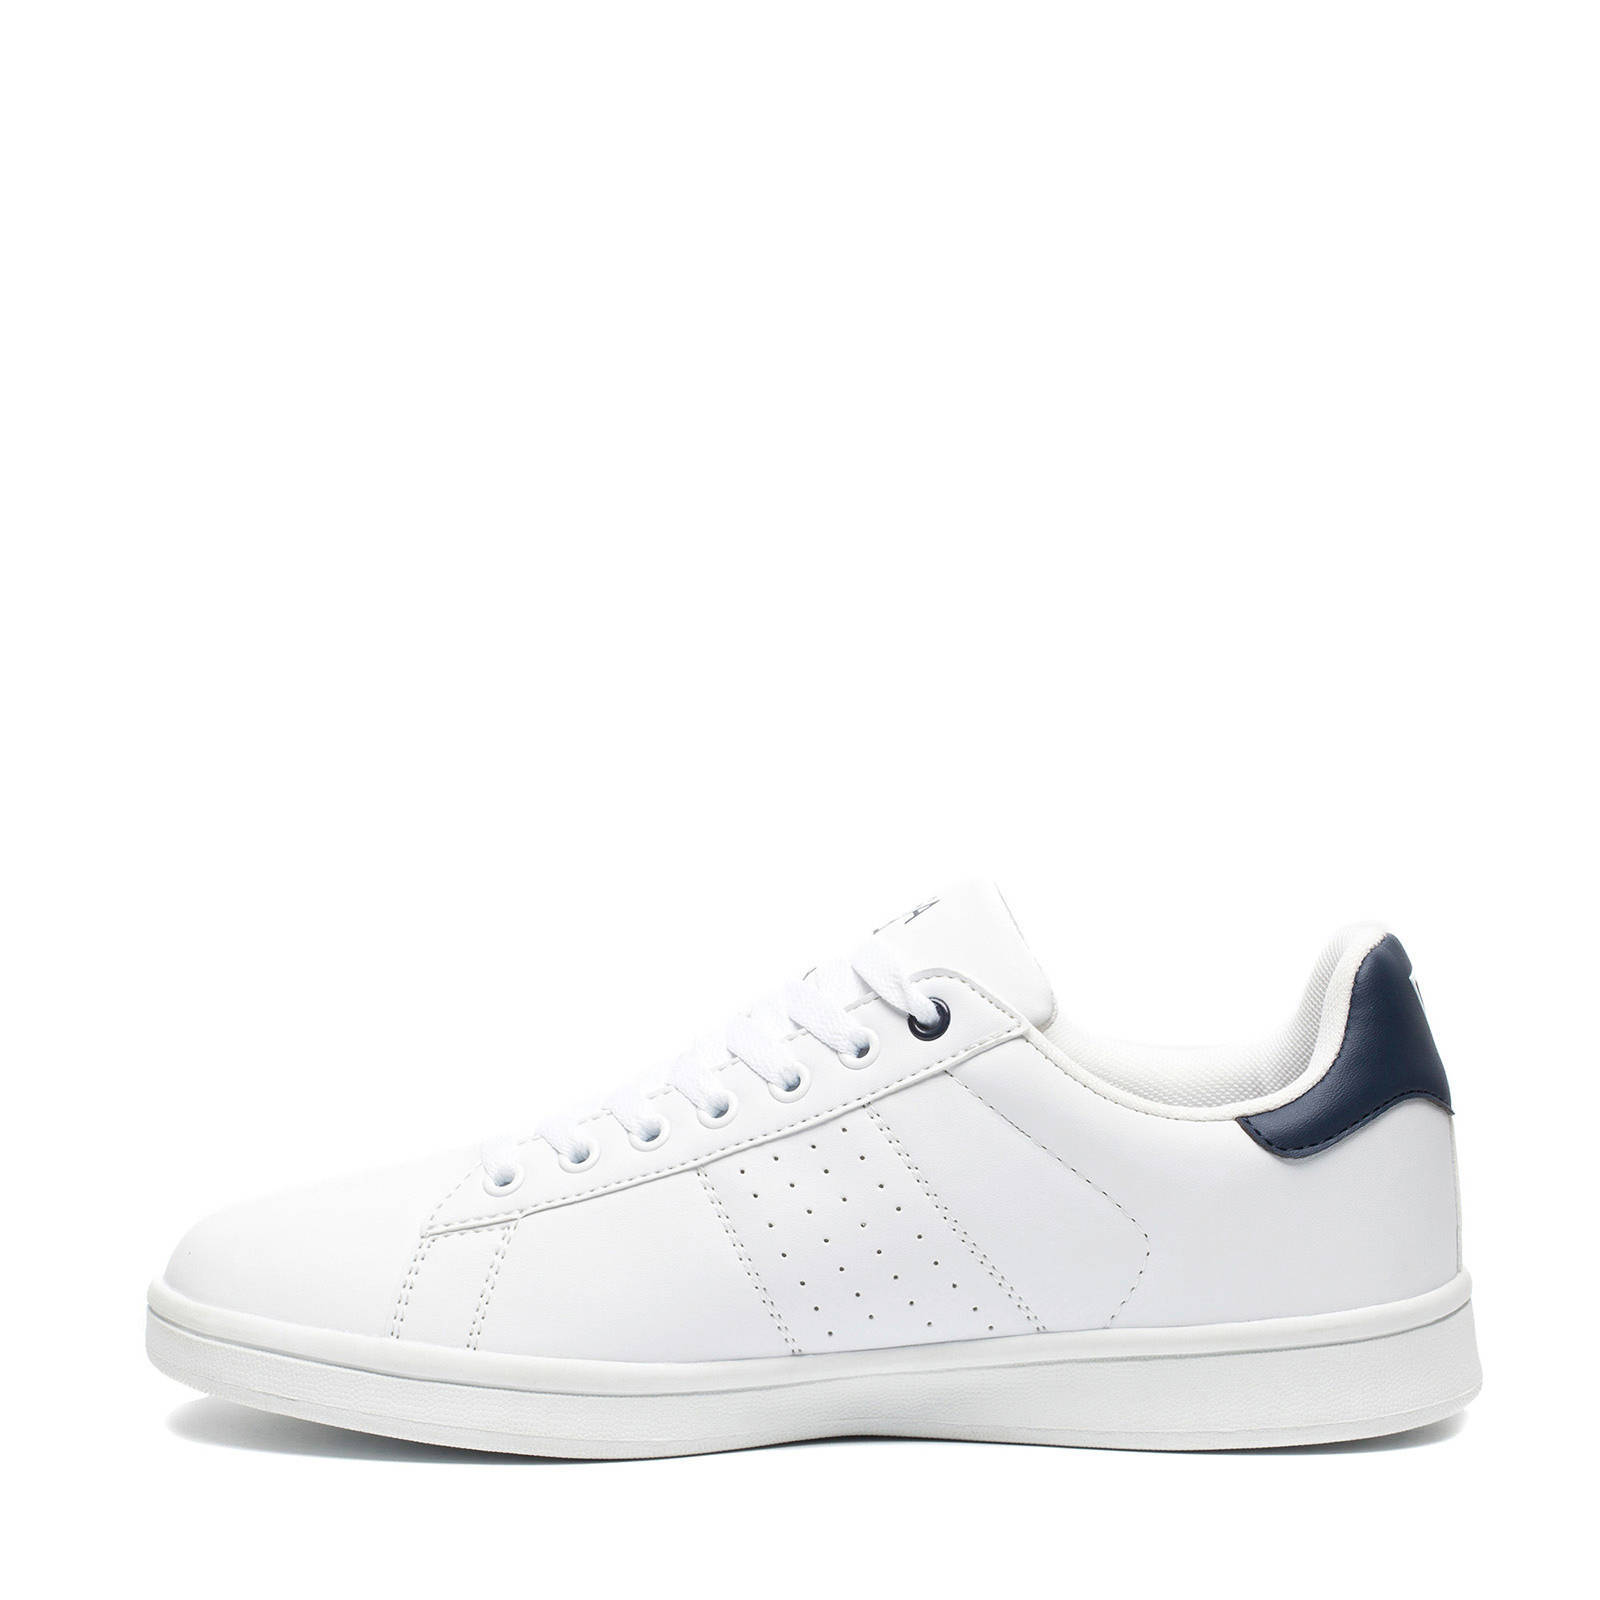 Wit Sneakers Wit Osaga Scapino Scapino Wehkamp Scapino Sneakers Wehkamp Osaga Osaga qCn85zF5w